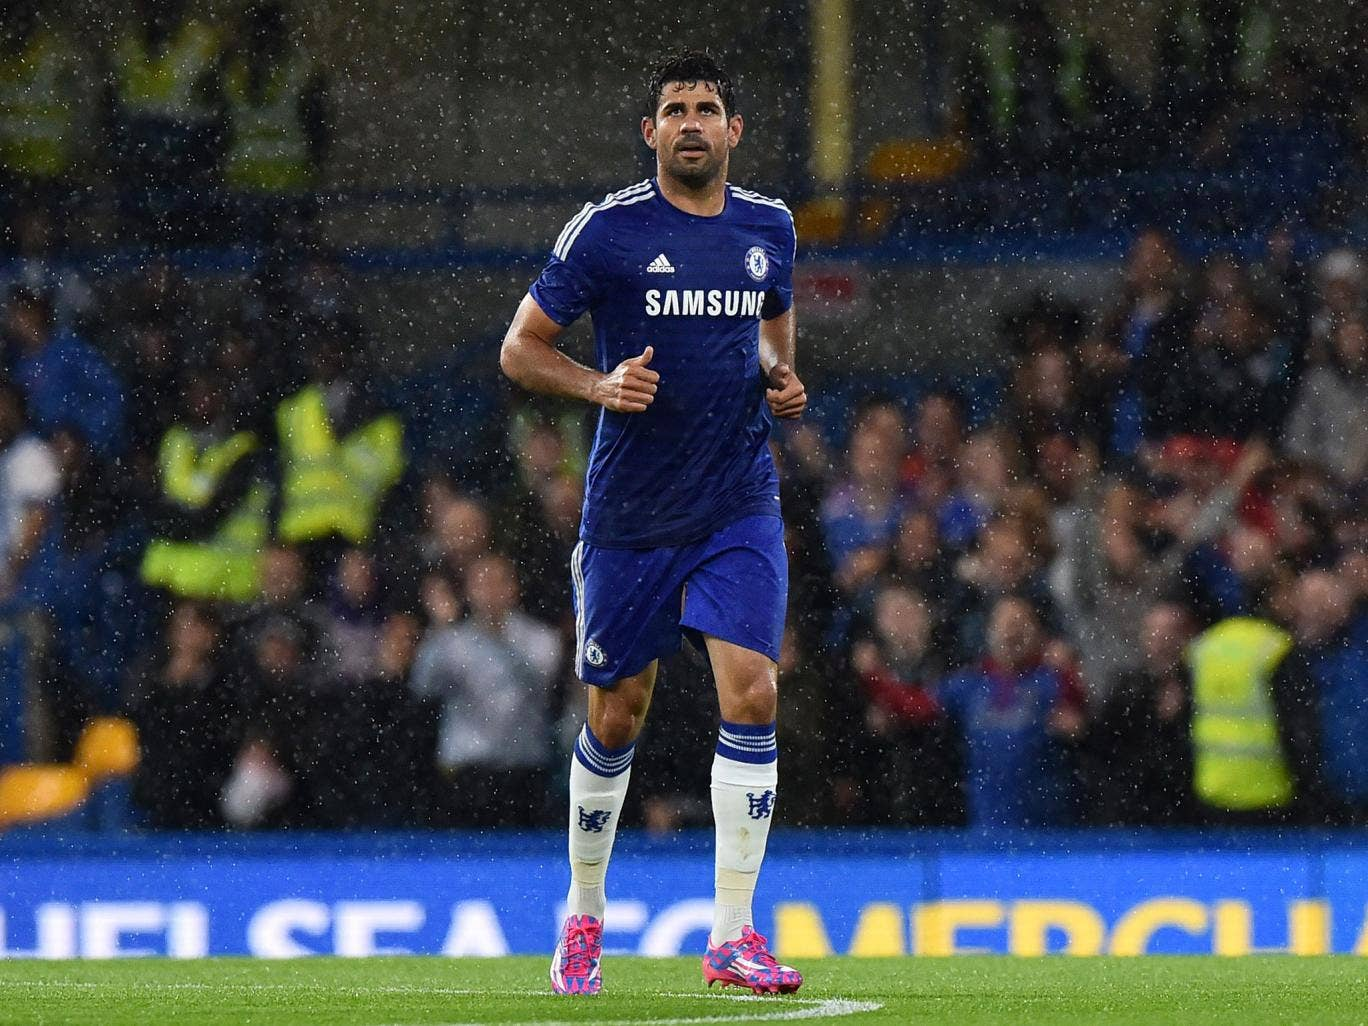 Jose Mourinho called Diego Costa 'a bargain' after seeing him score twice on his home debut